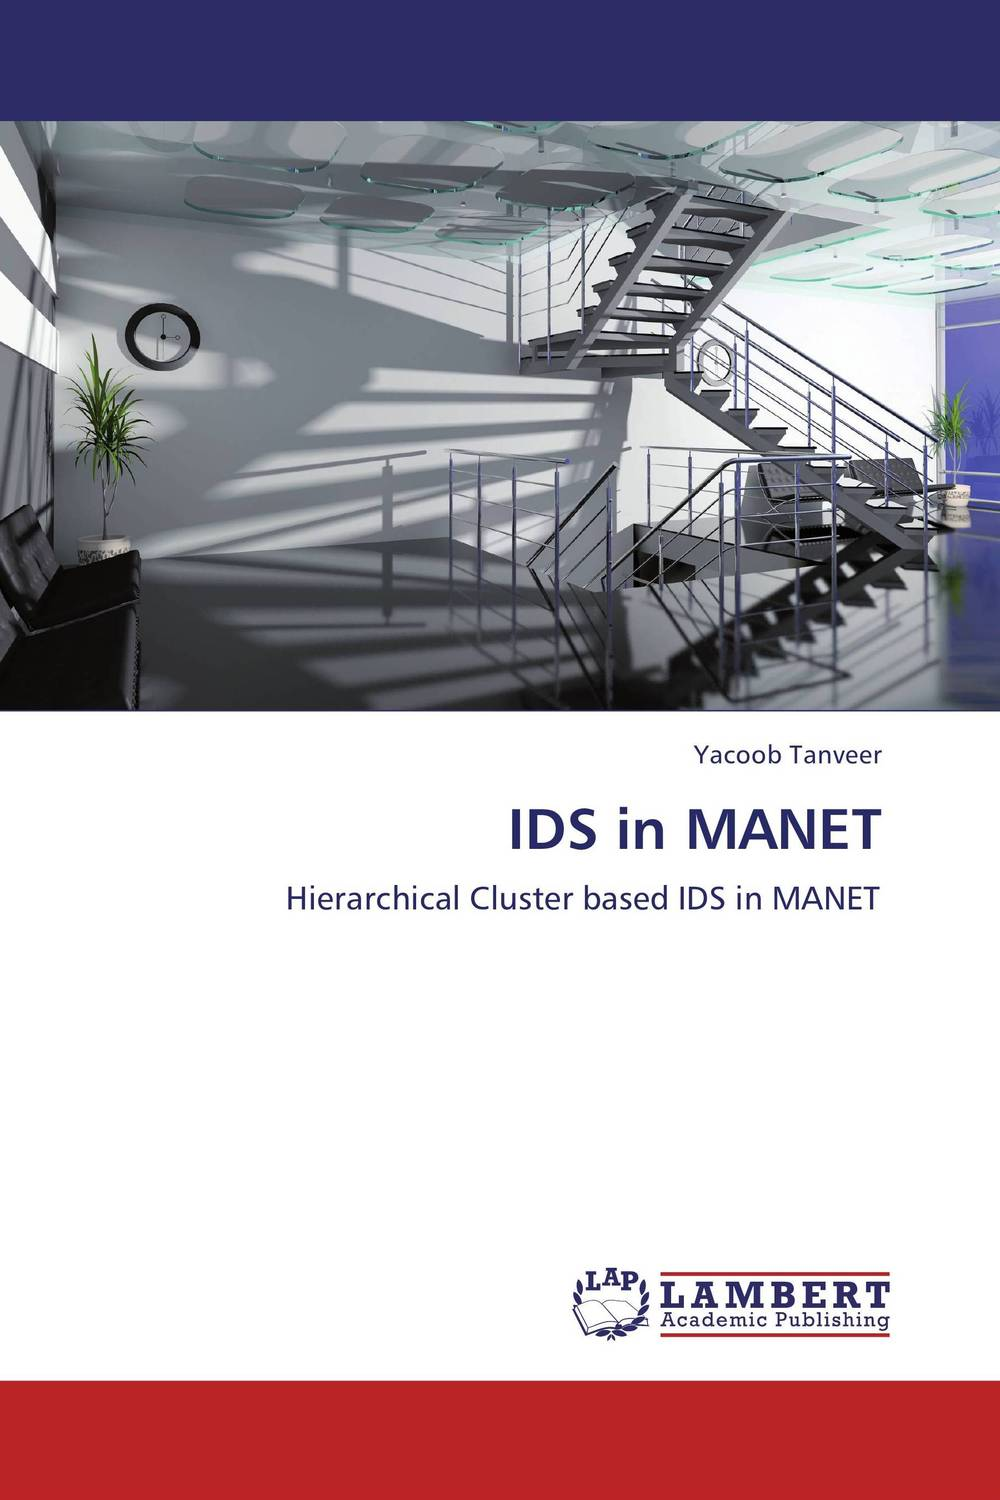 IDS in MANET intrusion detection system architecture in wireless sensor network